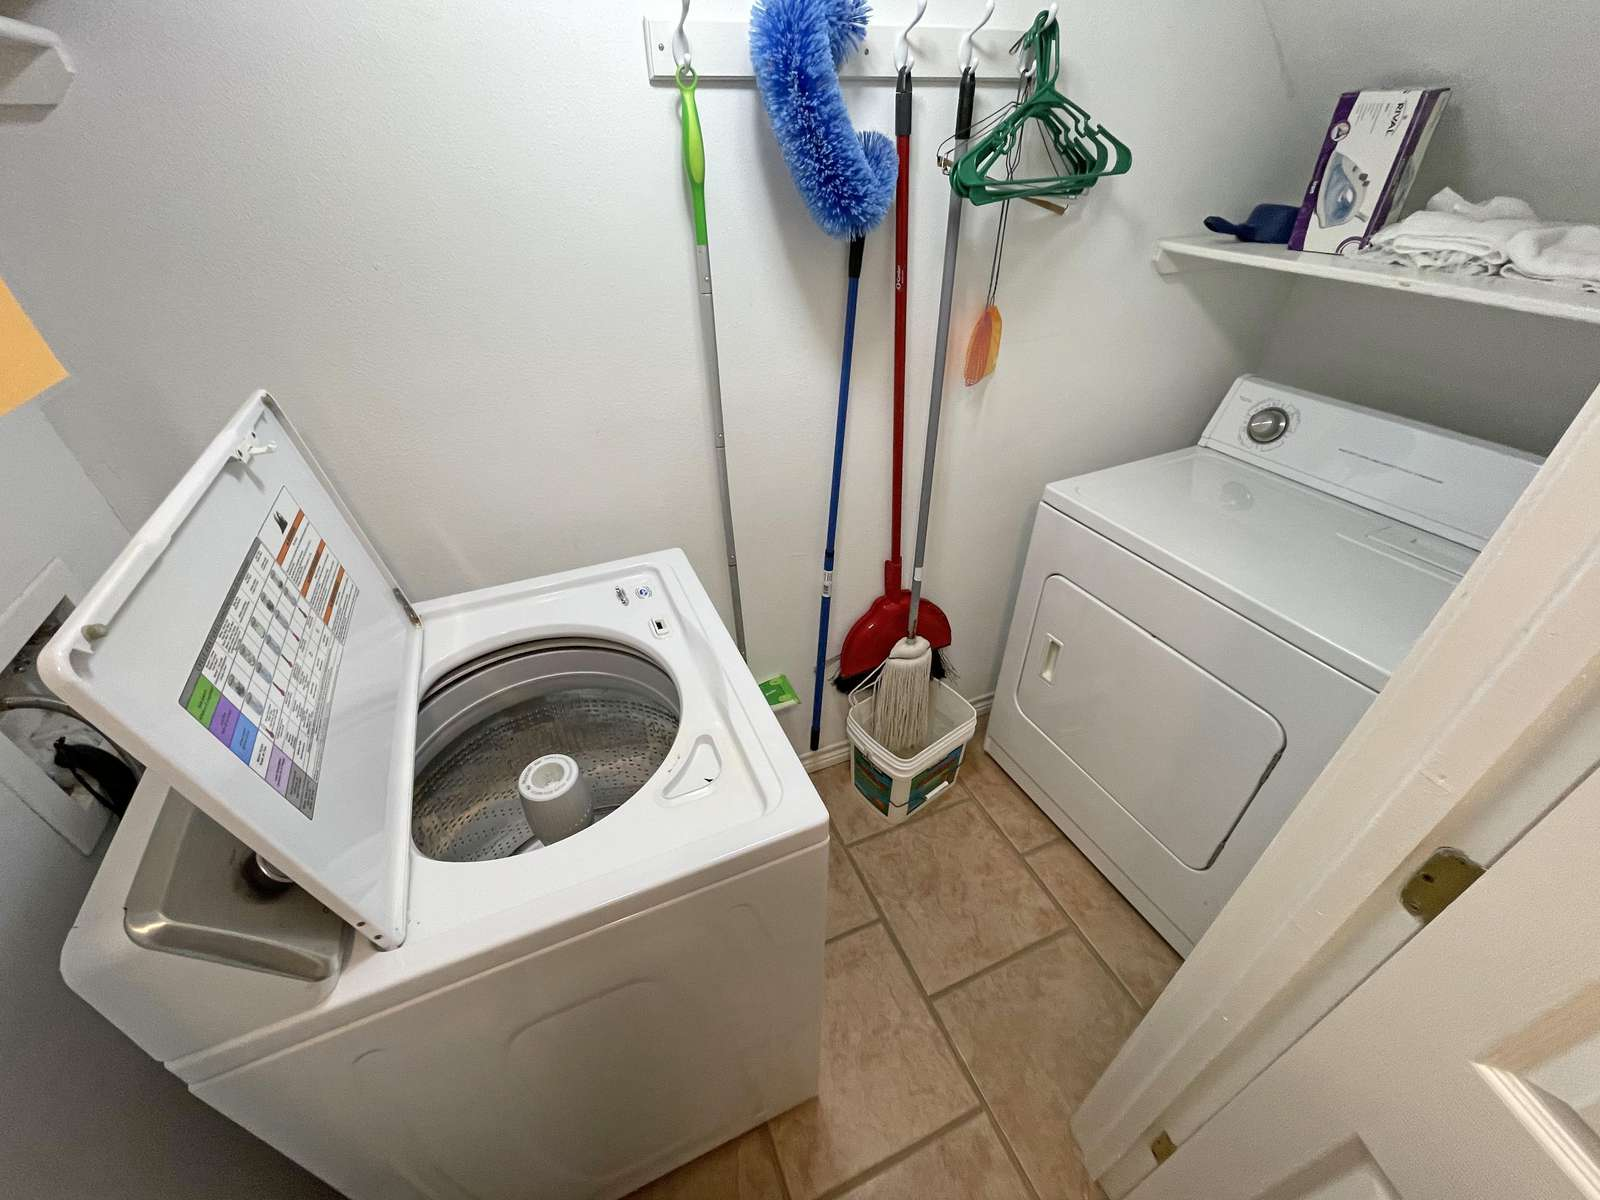 As is the case with all our homes, we have washers and dryers.